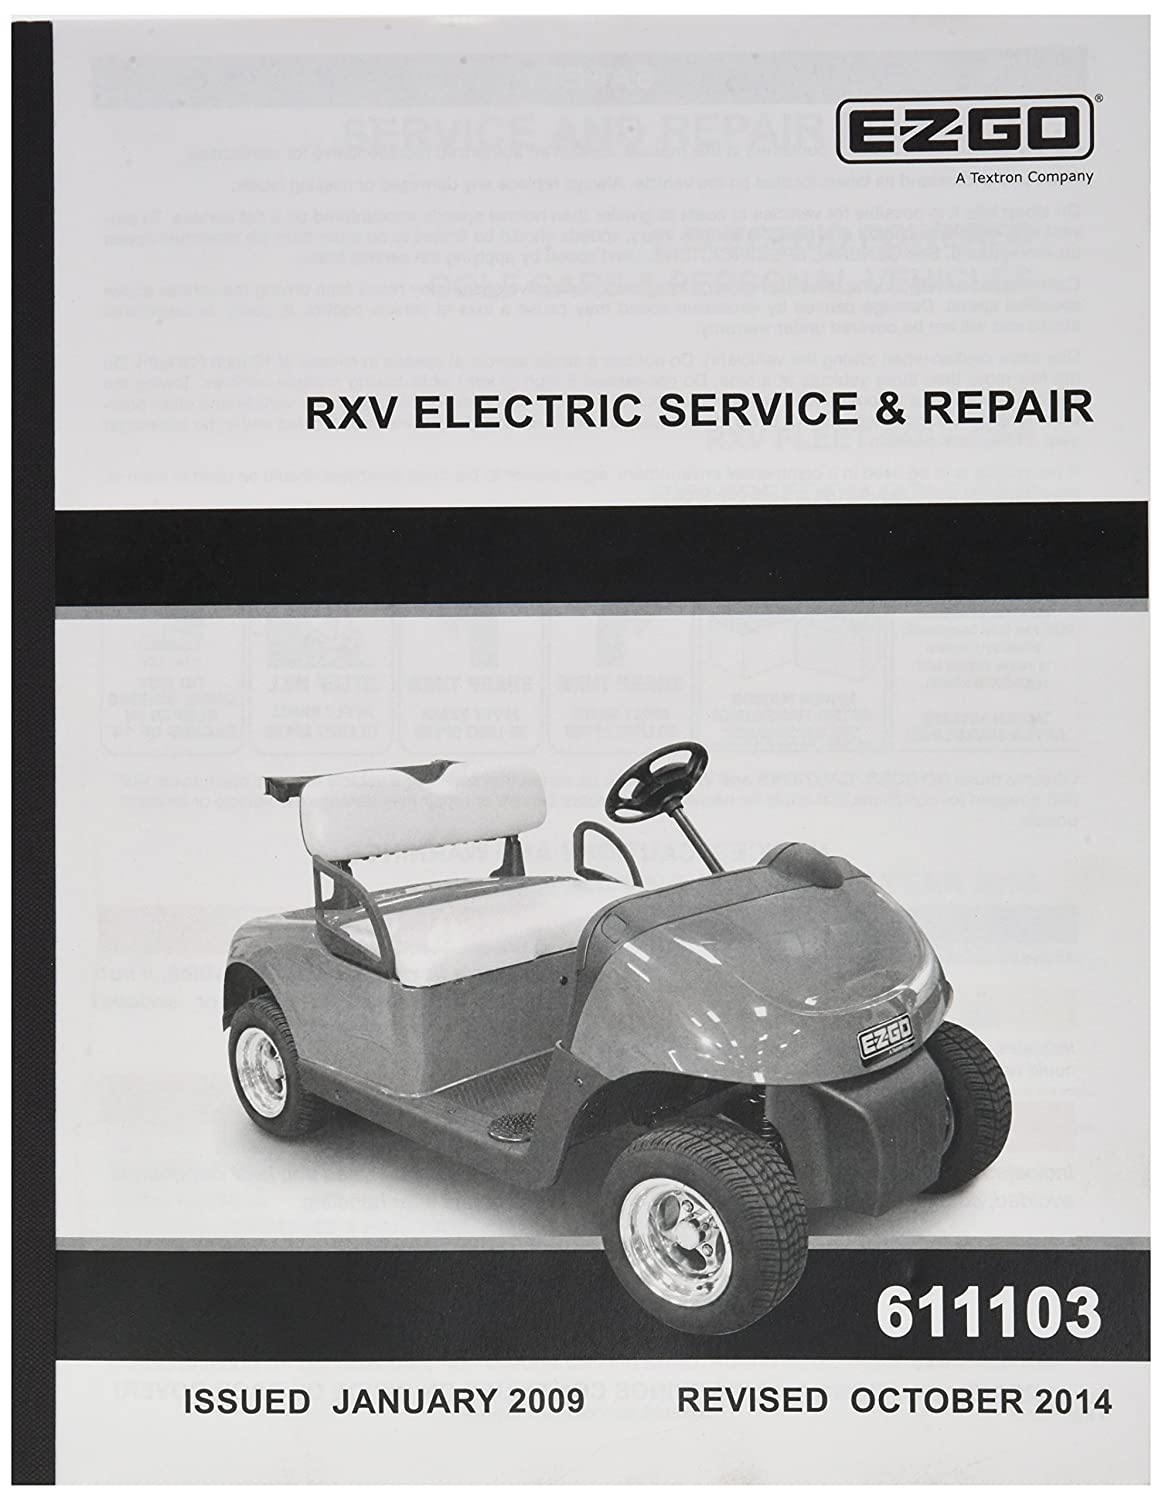 Amazon.com : EZGO 611103 2009 Current Service and Repair Manual Electric  RXV : Outdoor Decorative Fences : Garden & Outdoor